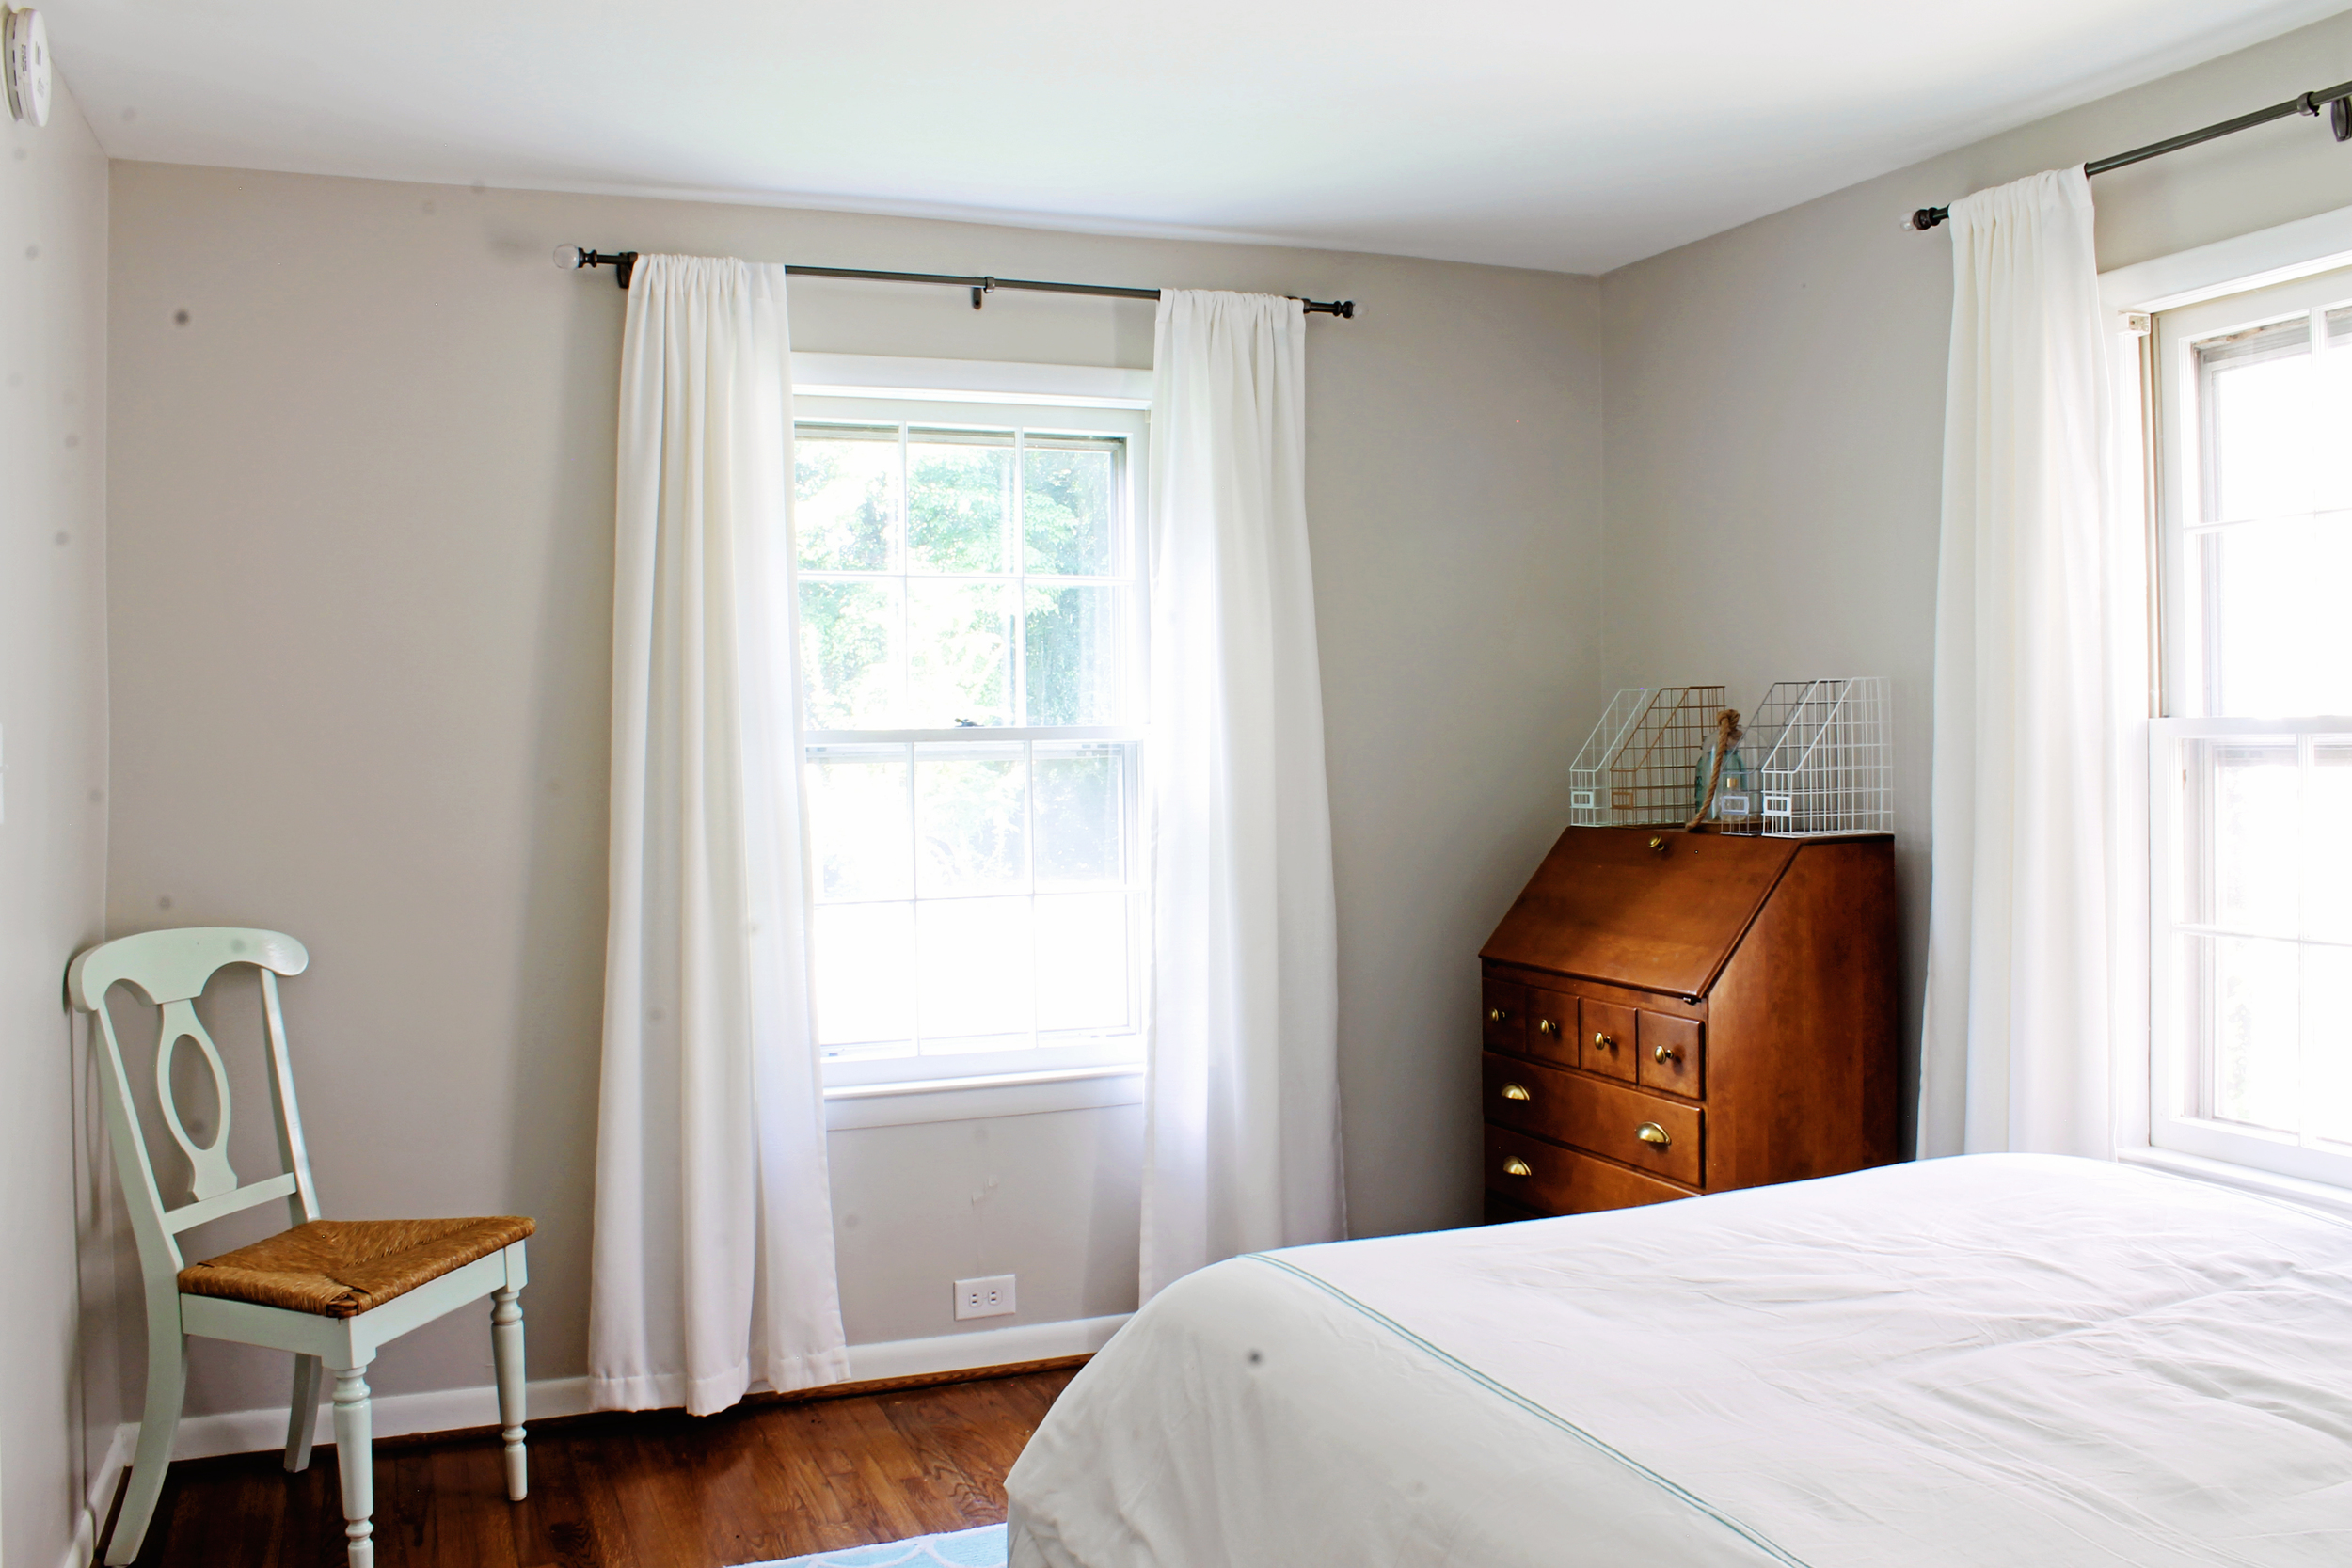 Elizabeth Burns Design | Sherwin Williams Agreeable Gray, Bedroom Design, Raleigh NC Interior Design, Before and After